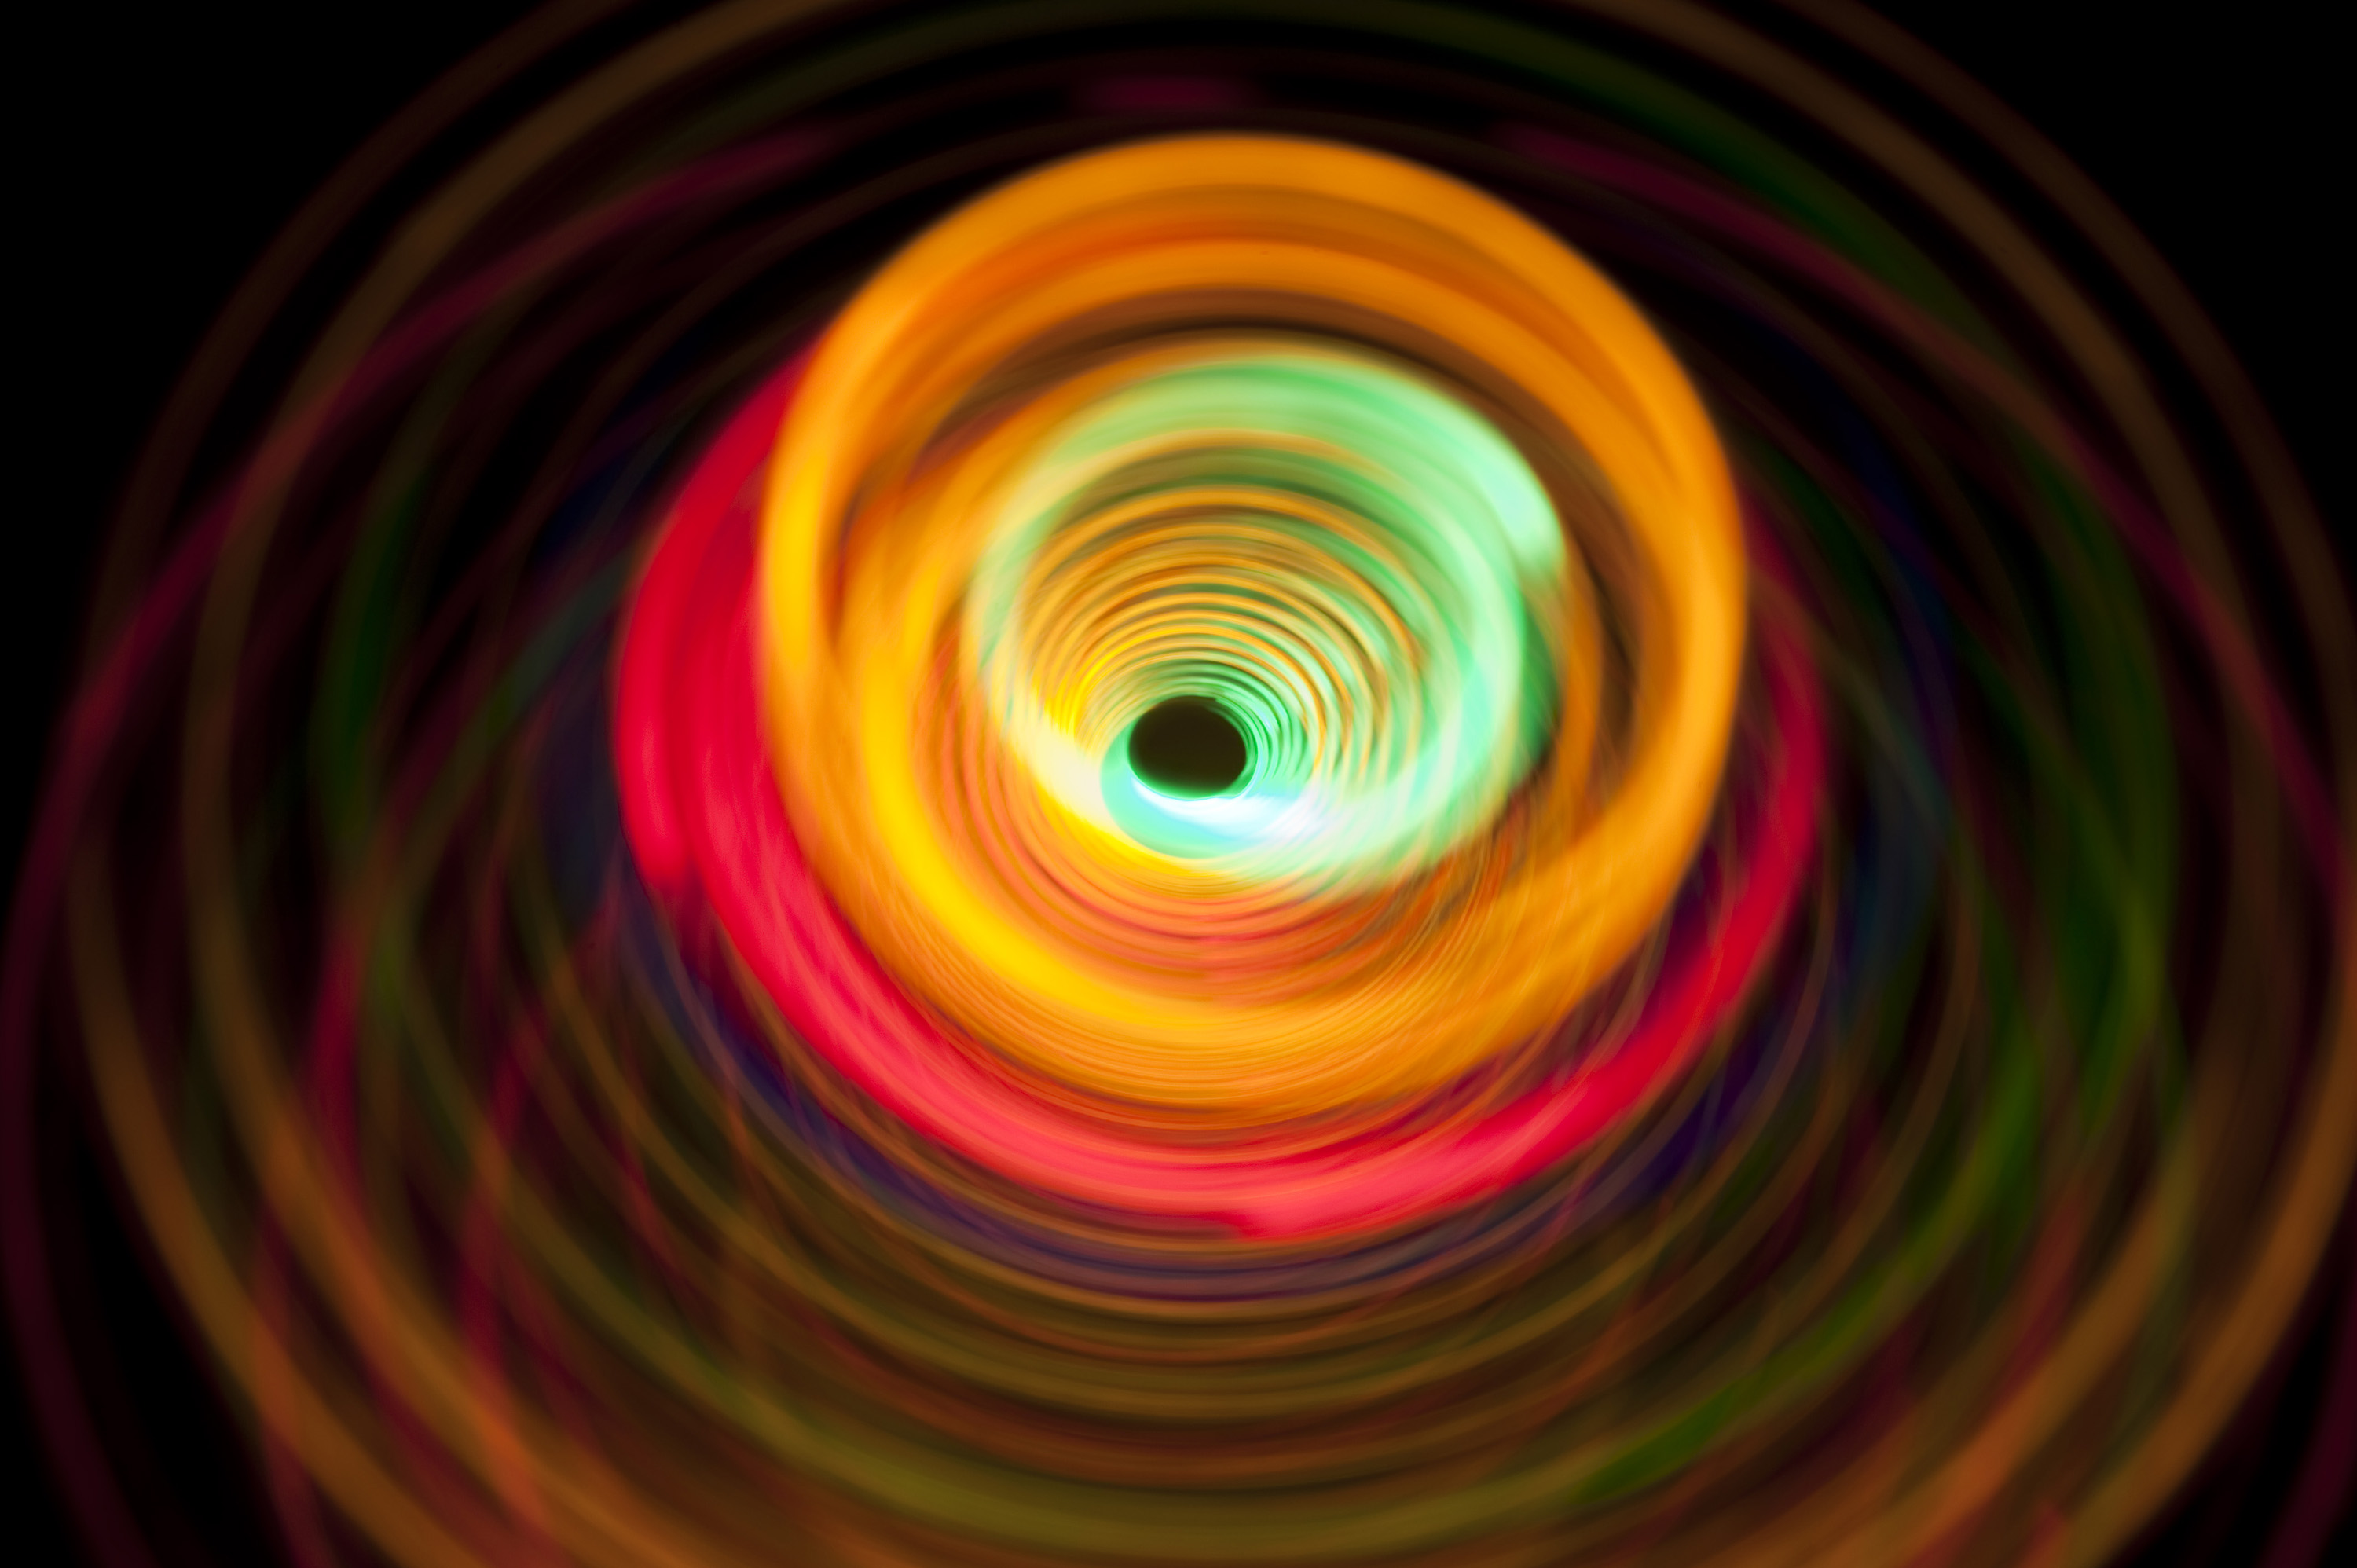 an image of colorful lights inspired by spinning motion